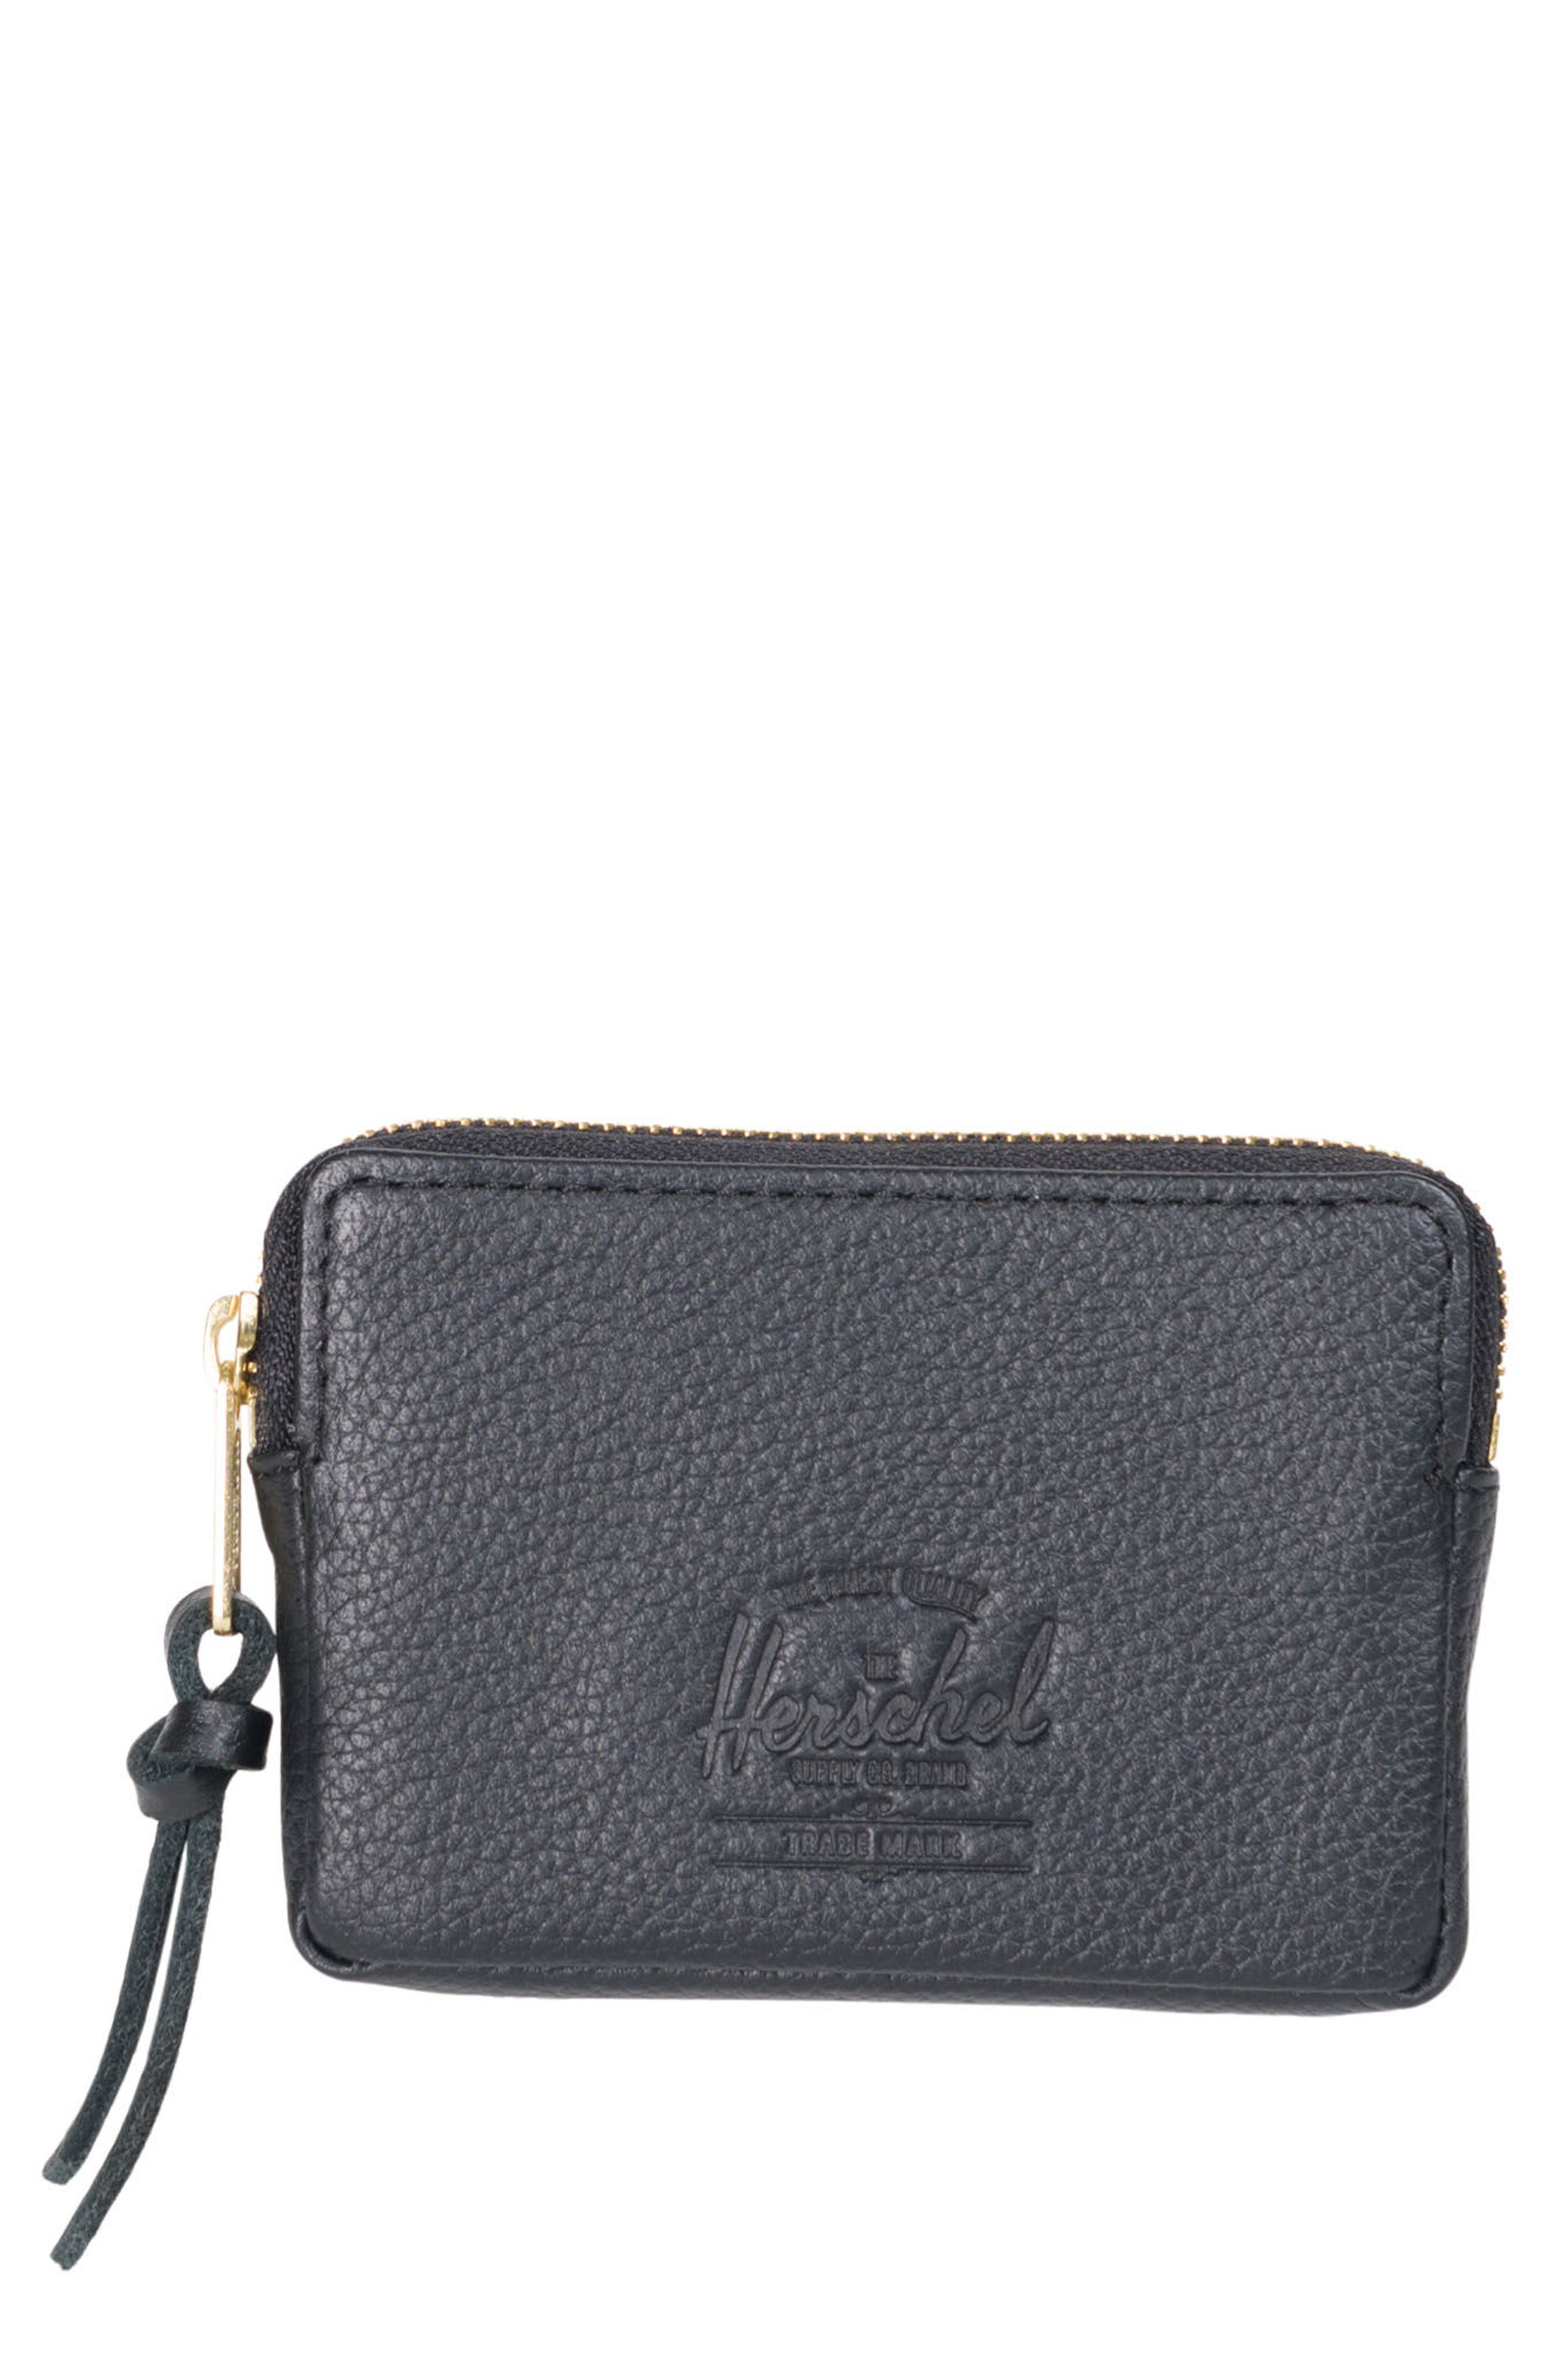 Main Image - Herschel Supply Co. Leather Zip Pouch